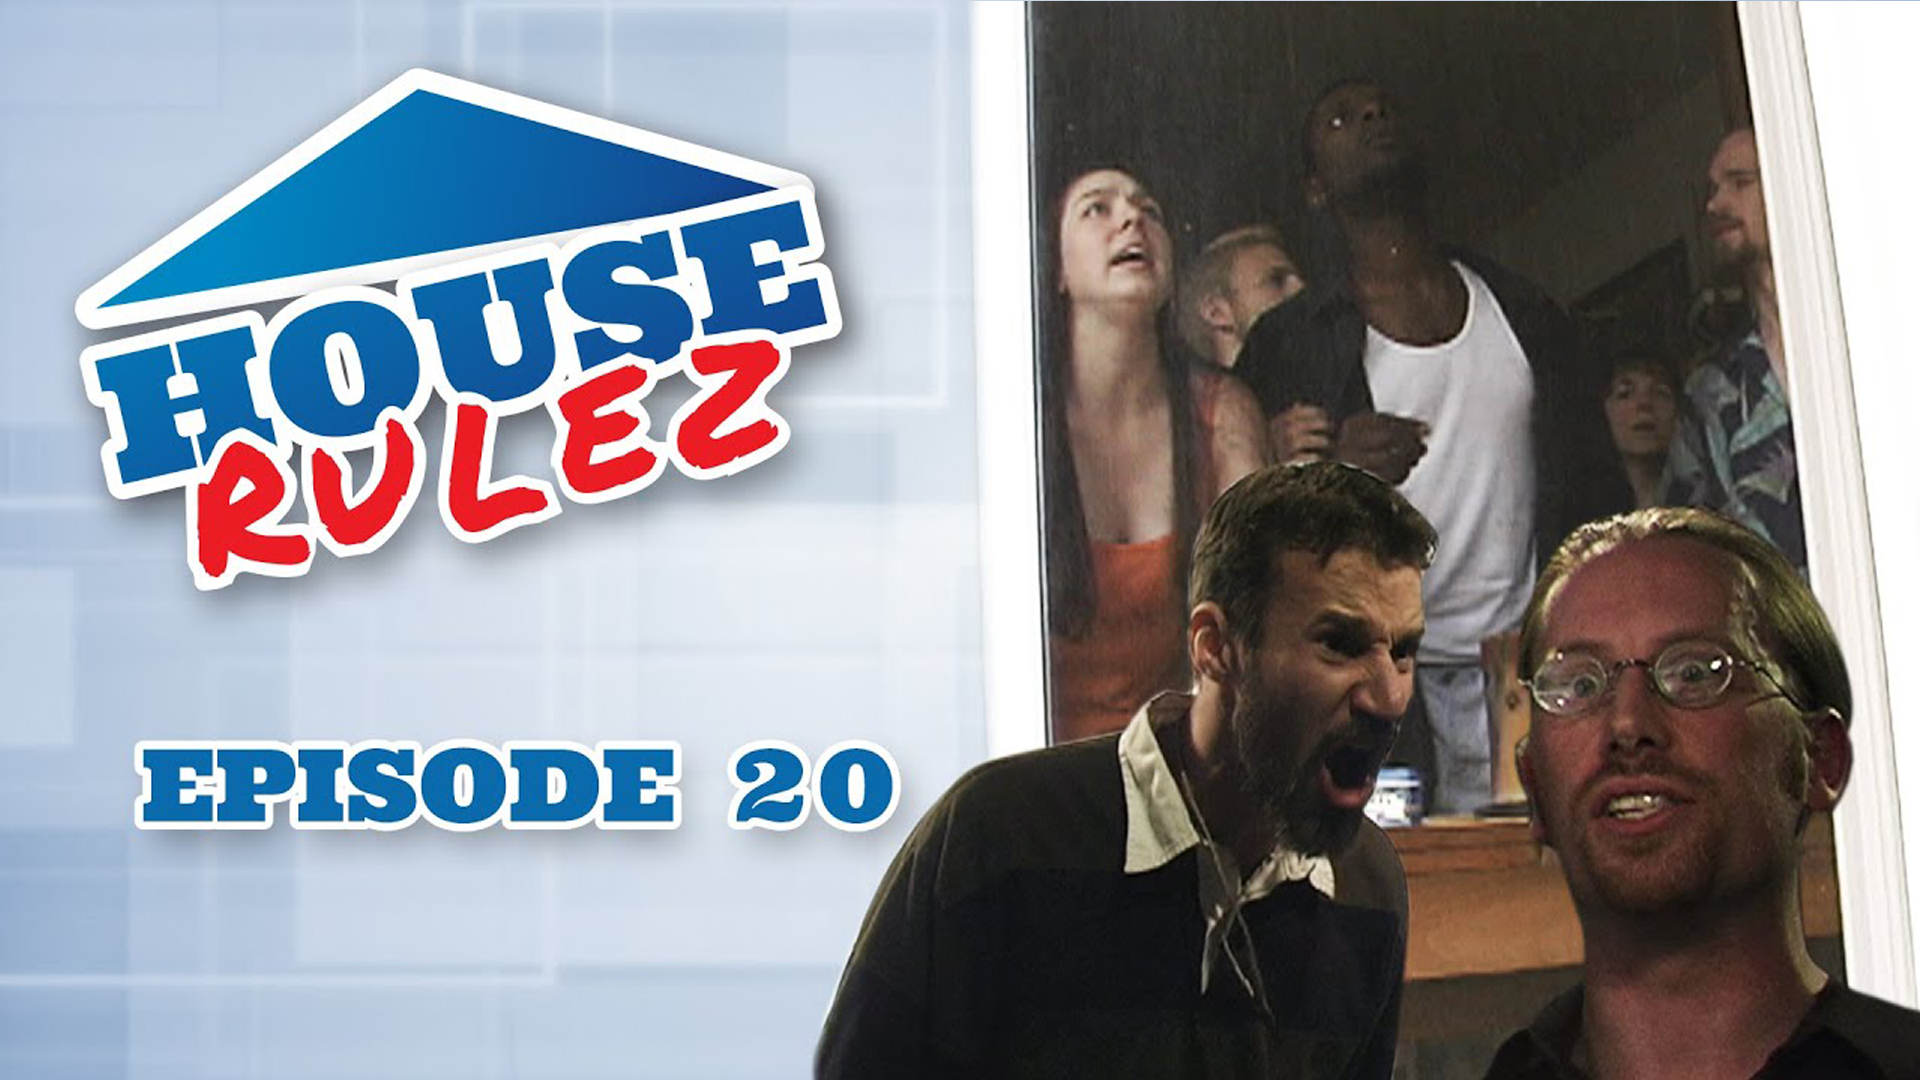 House Rulez Episode 20